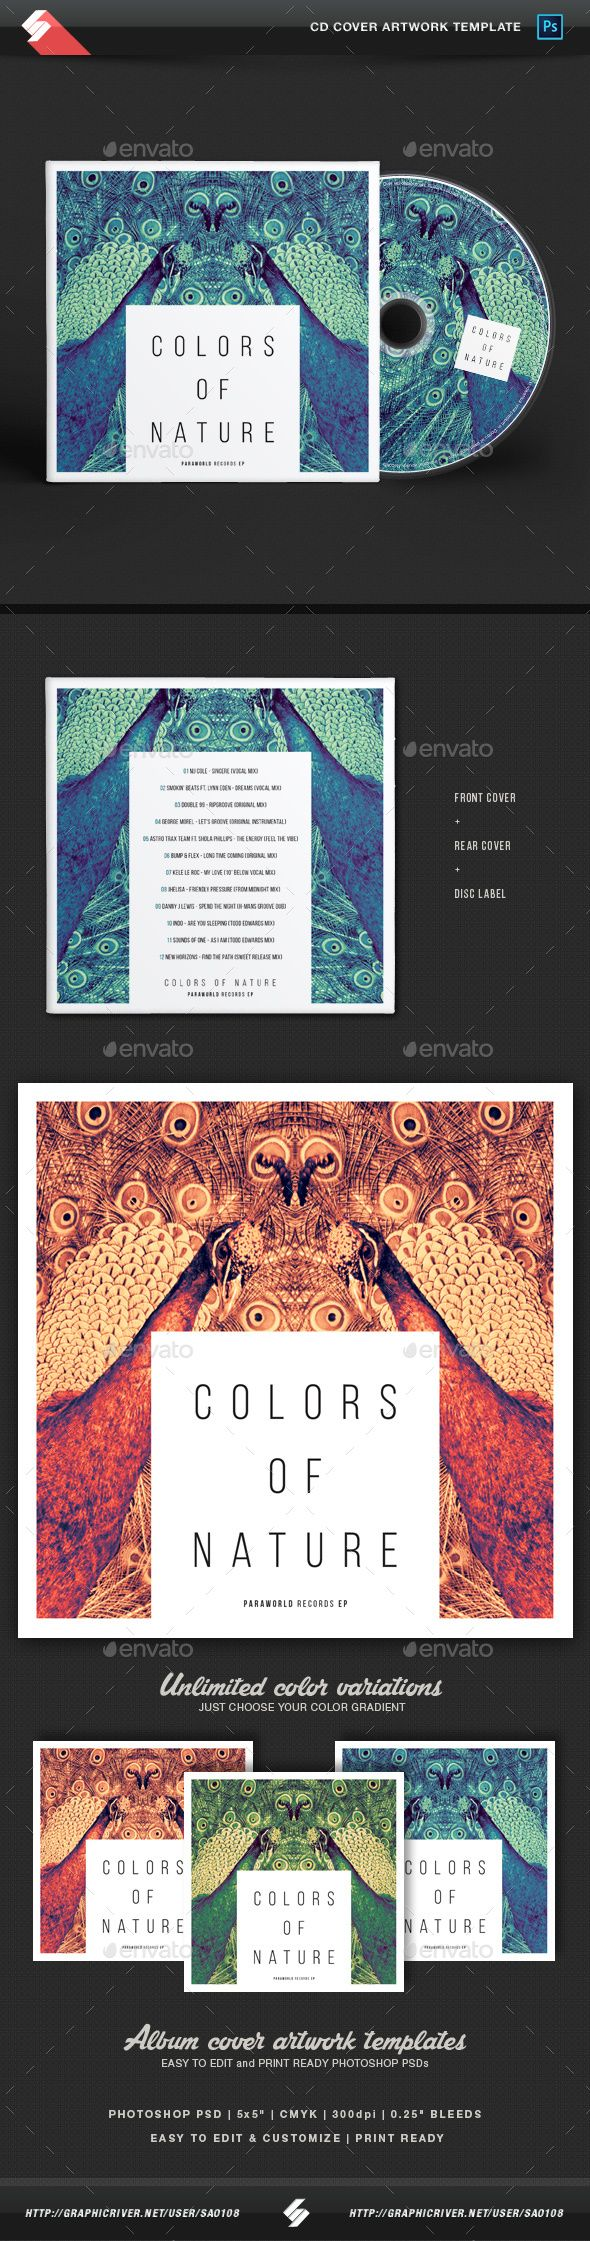 Colors Of Nature - Creative CD Cover Artwork Template   Cd cover ...